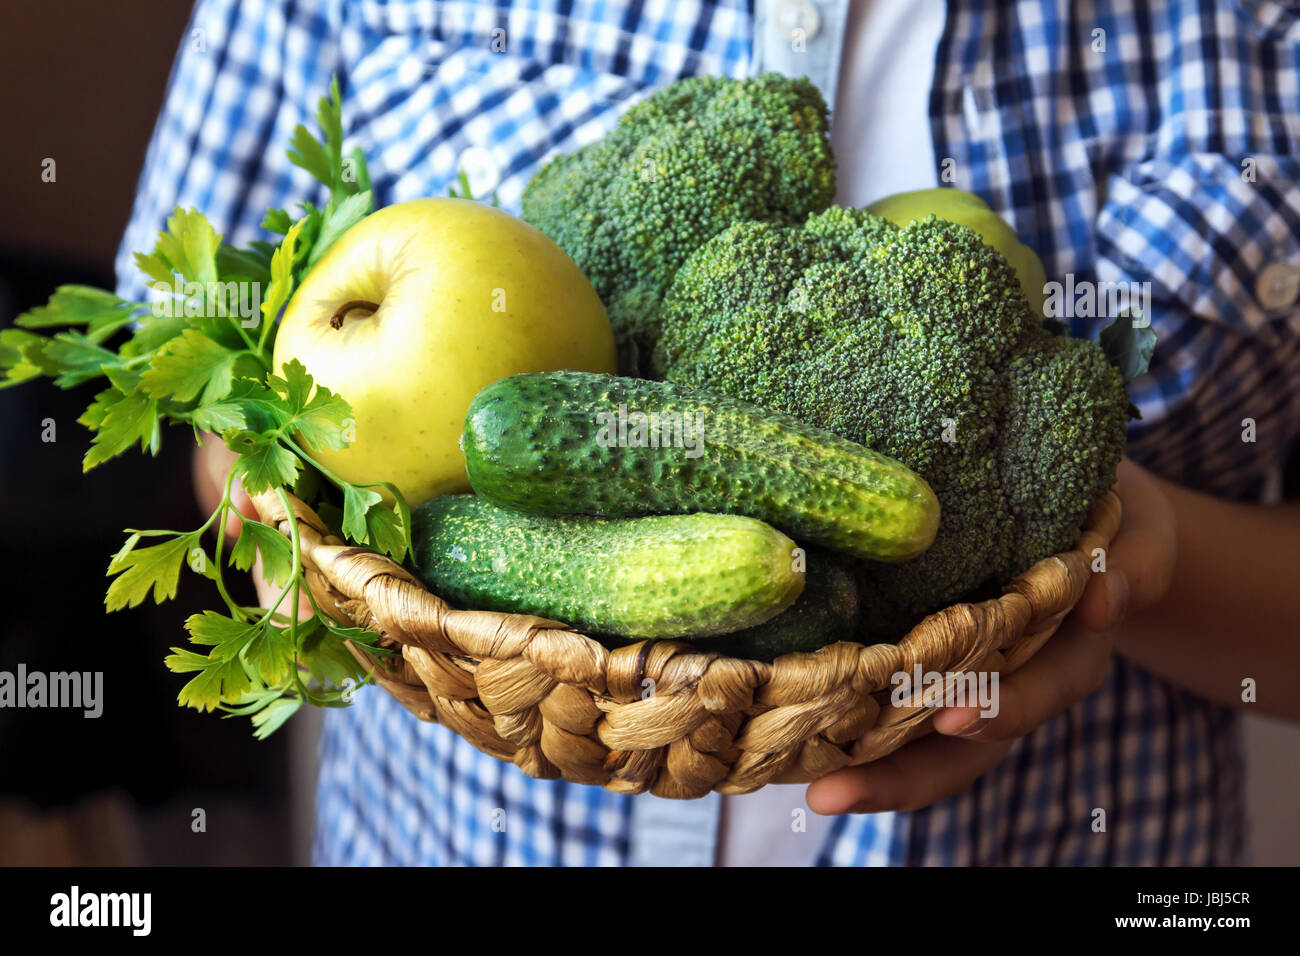 Person (hands) hold basket with organic green vegetables (broccoli, cucumbers, apple and parsley) - healthy organic Stock Photo